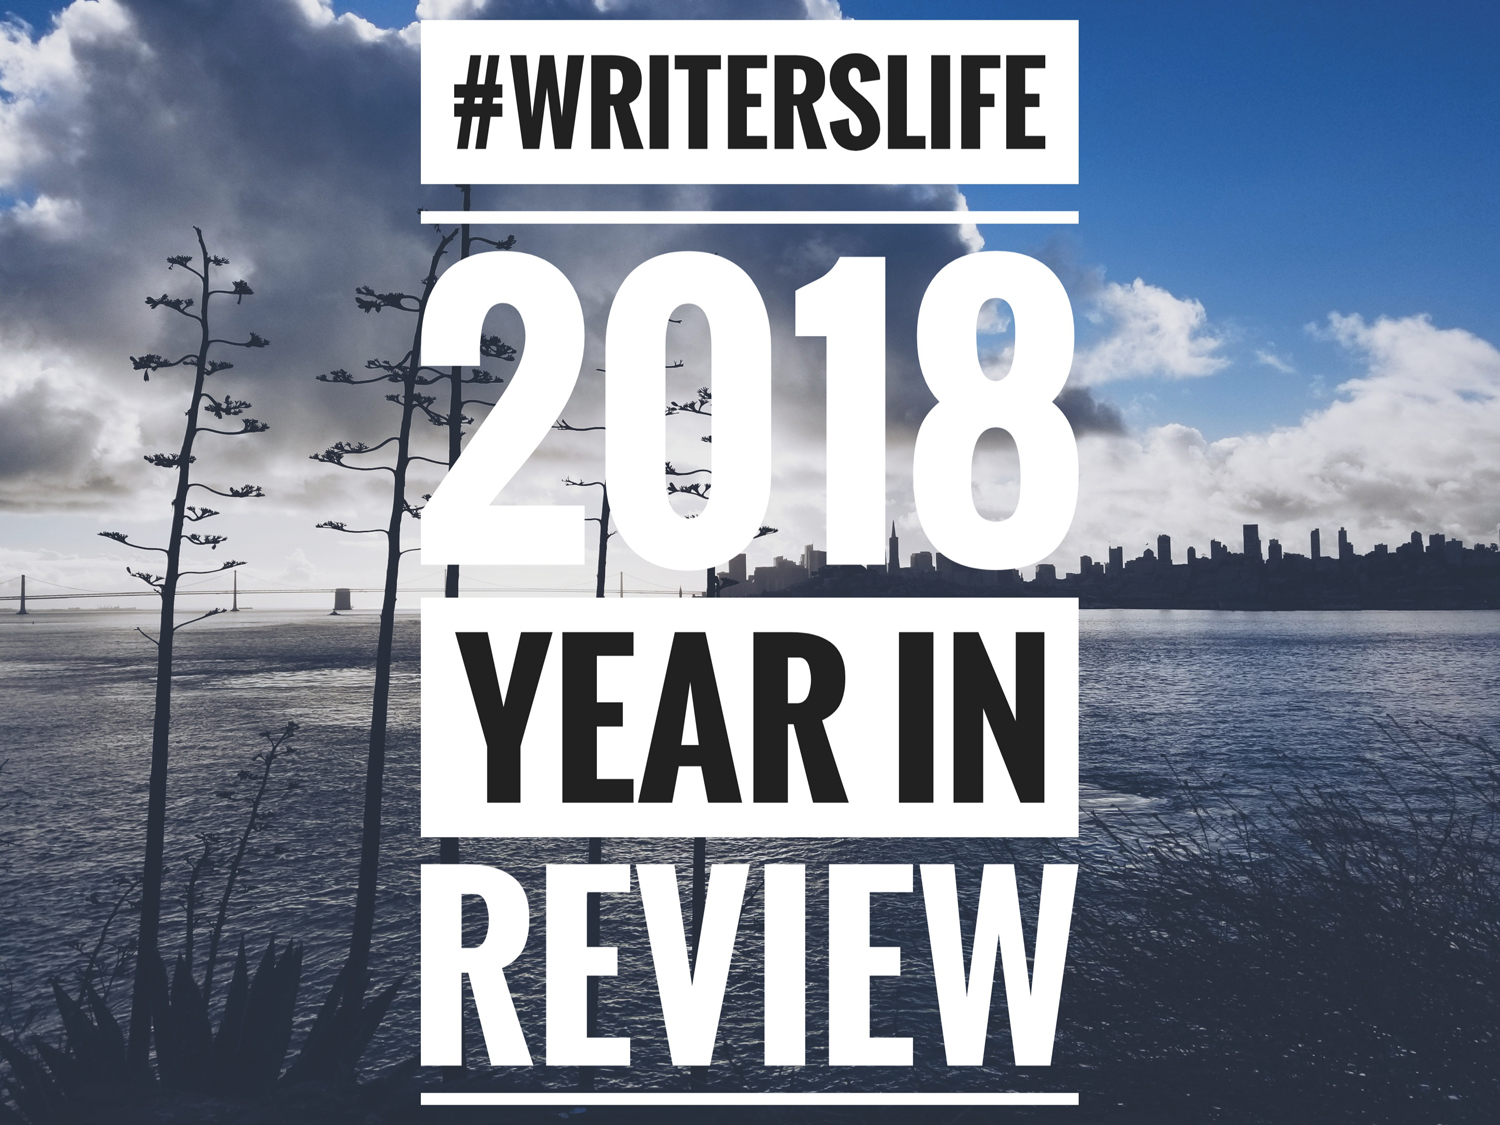 em-markoff-writers-life-2018-year-in-review.jpg